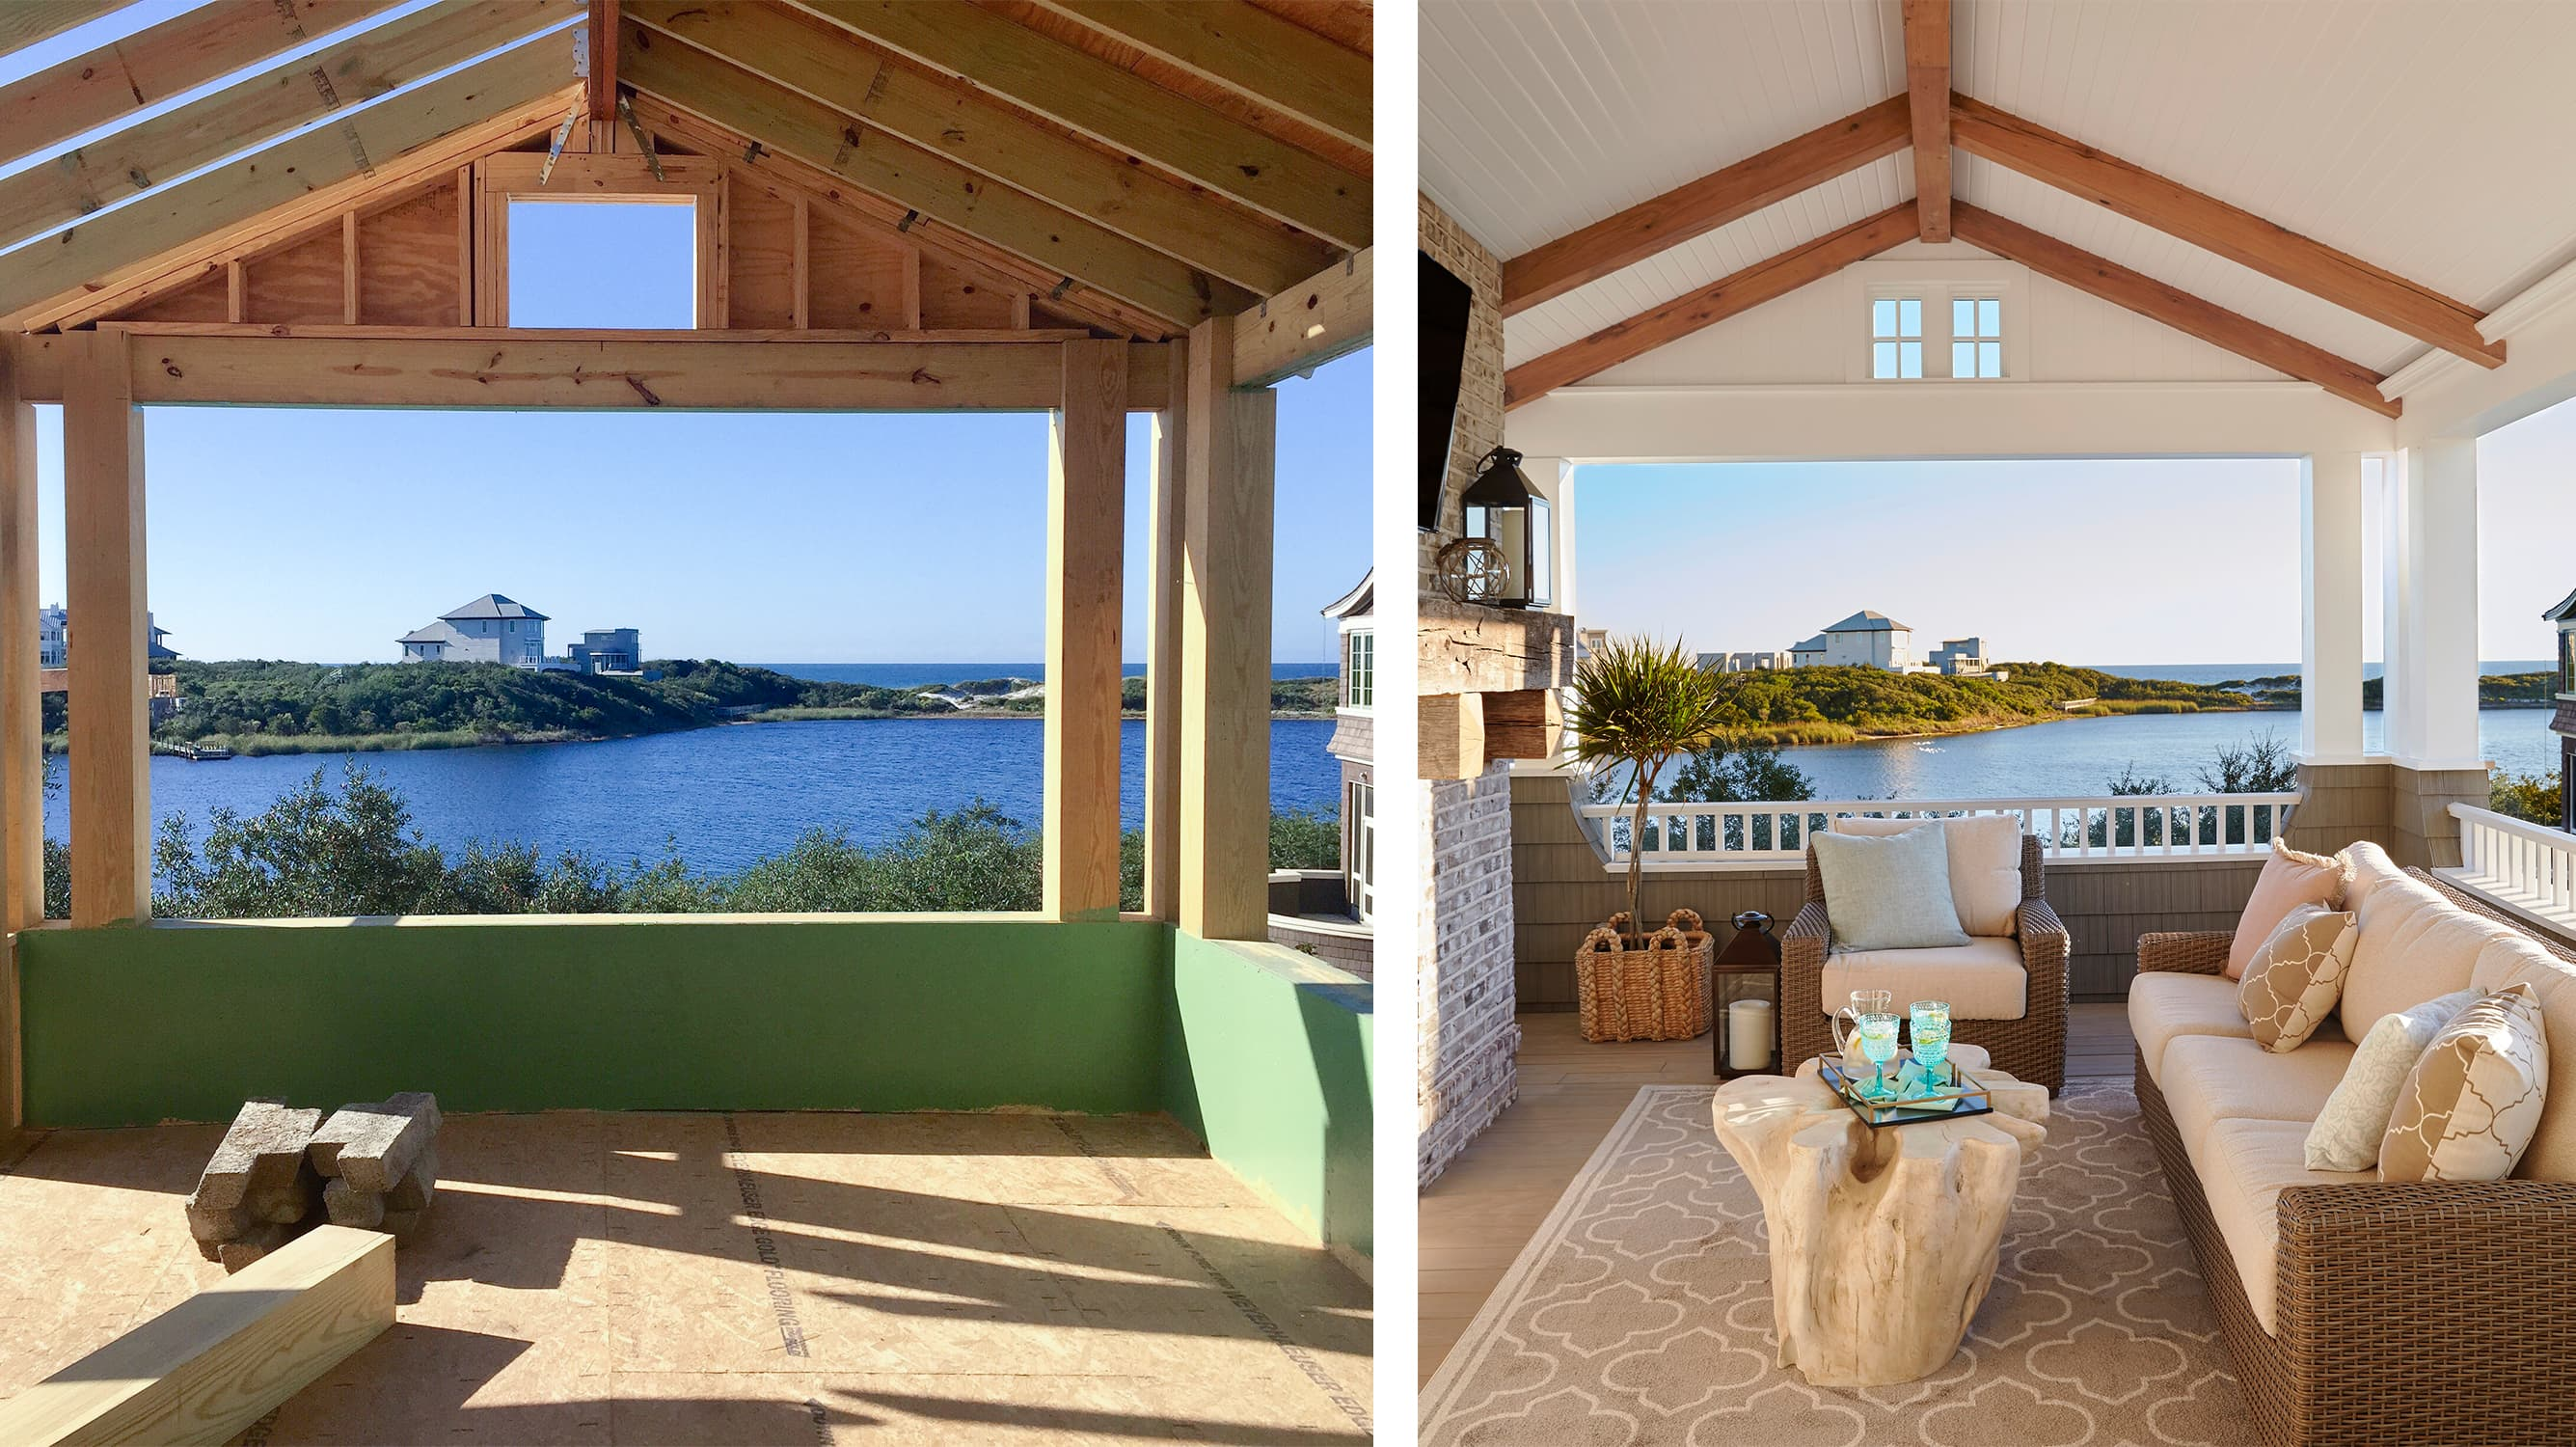 watersound beach before after indoor outdoor living - darci hether new york